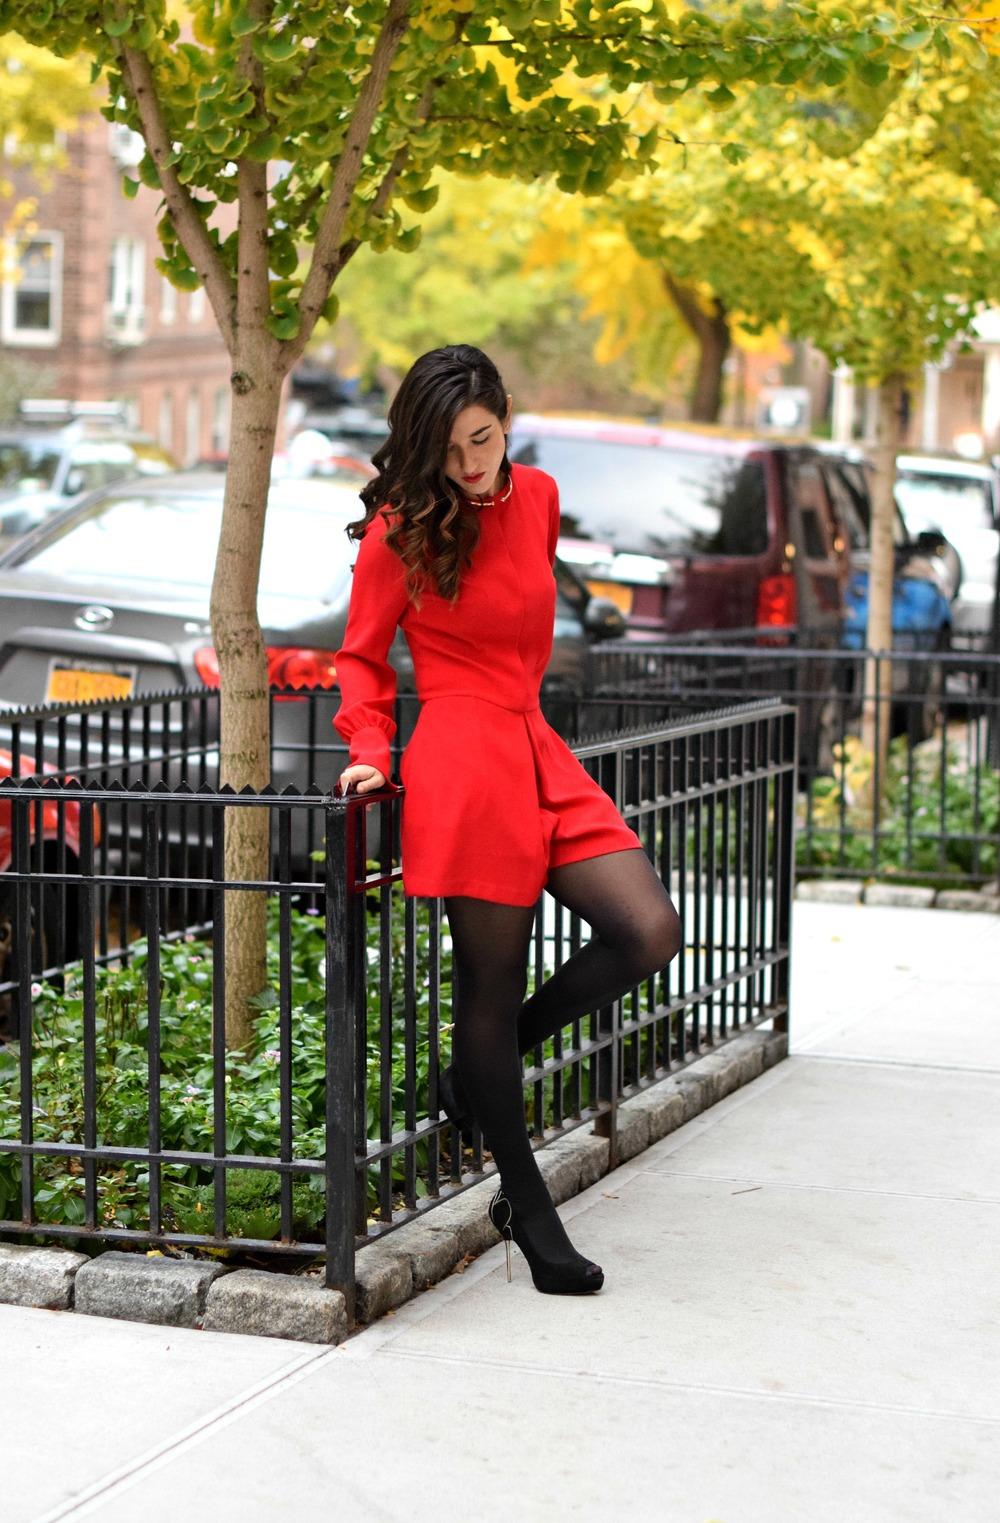 Red Romper Black Tights Louboutins & Love Fashion Blog Esther Santer NYC Street Style Blogger Winter Fall Look Shoes Zara Heels Gold Collar Necklace Braid Hair Inspo Outfit OOTD Photoshoot NYC Girl Women Stiletto Wear Shop  Clothing Model Accessories.jpg